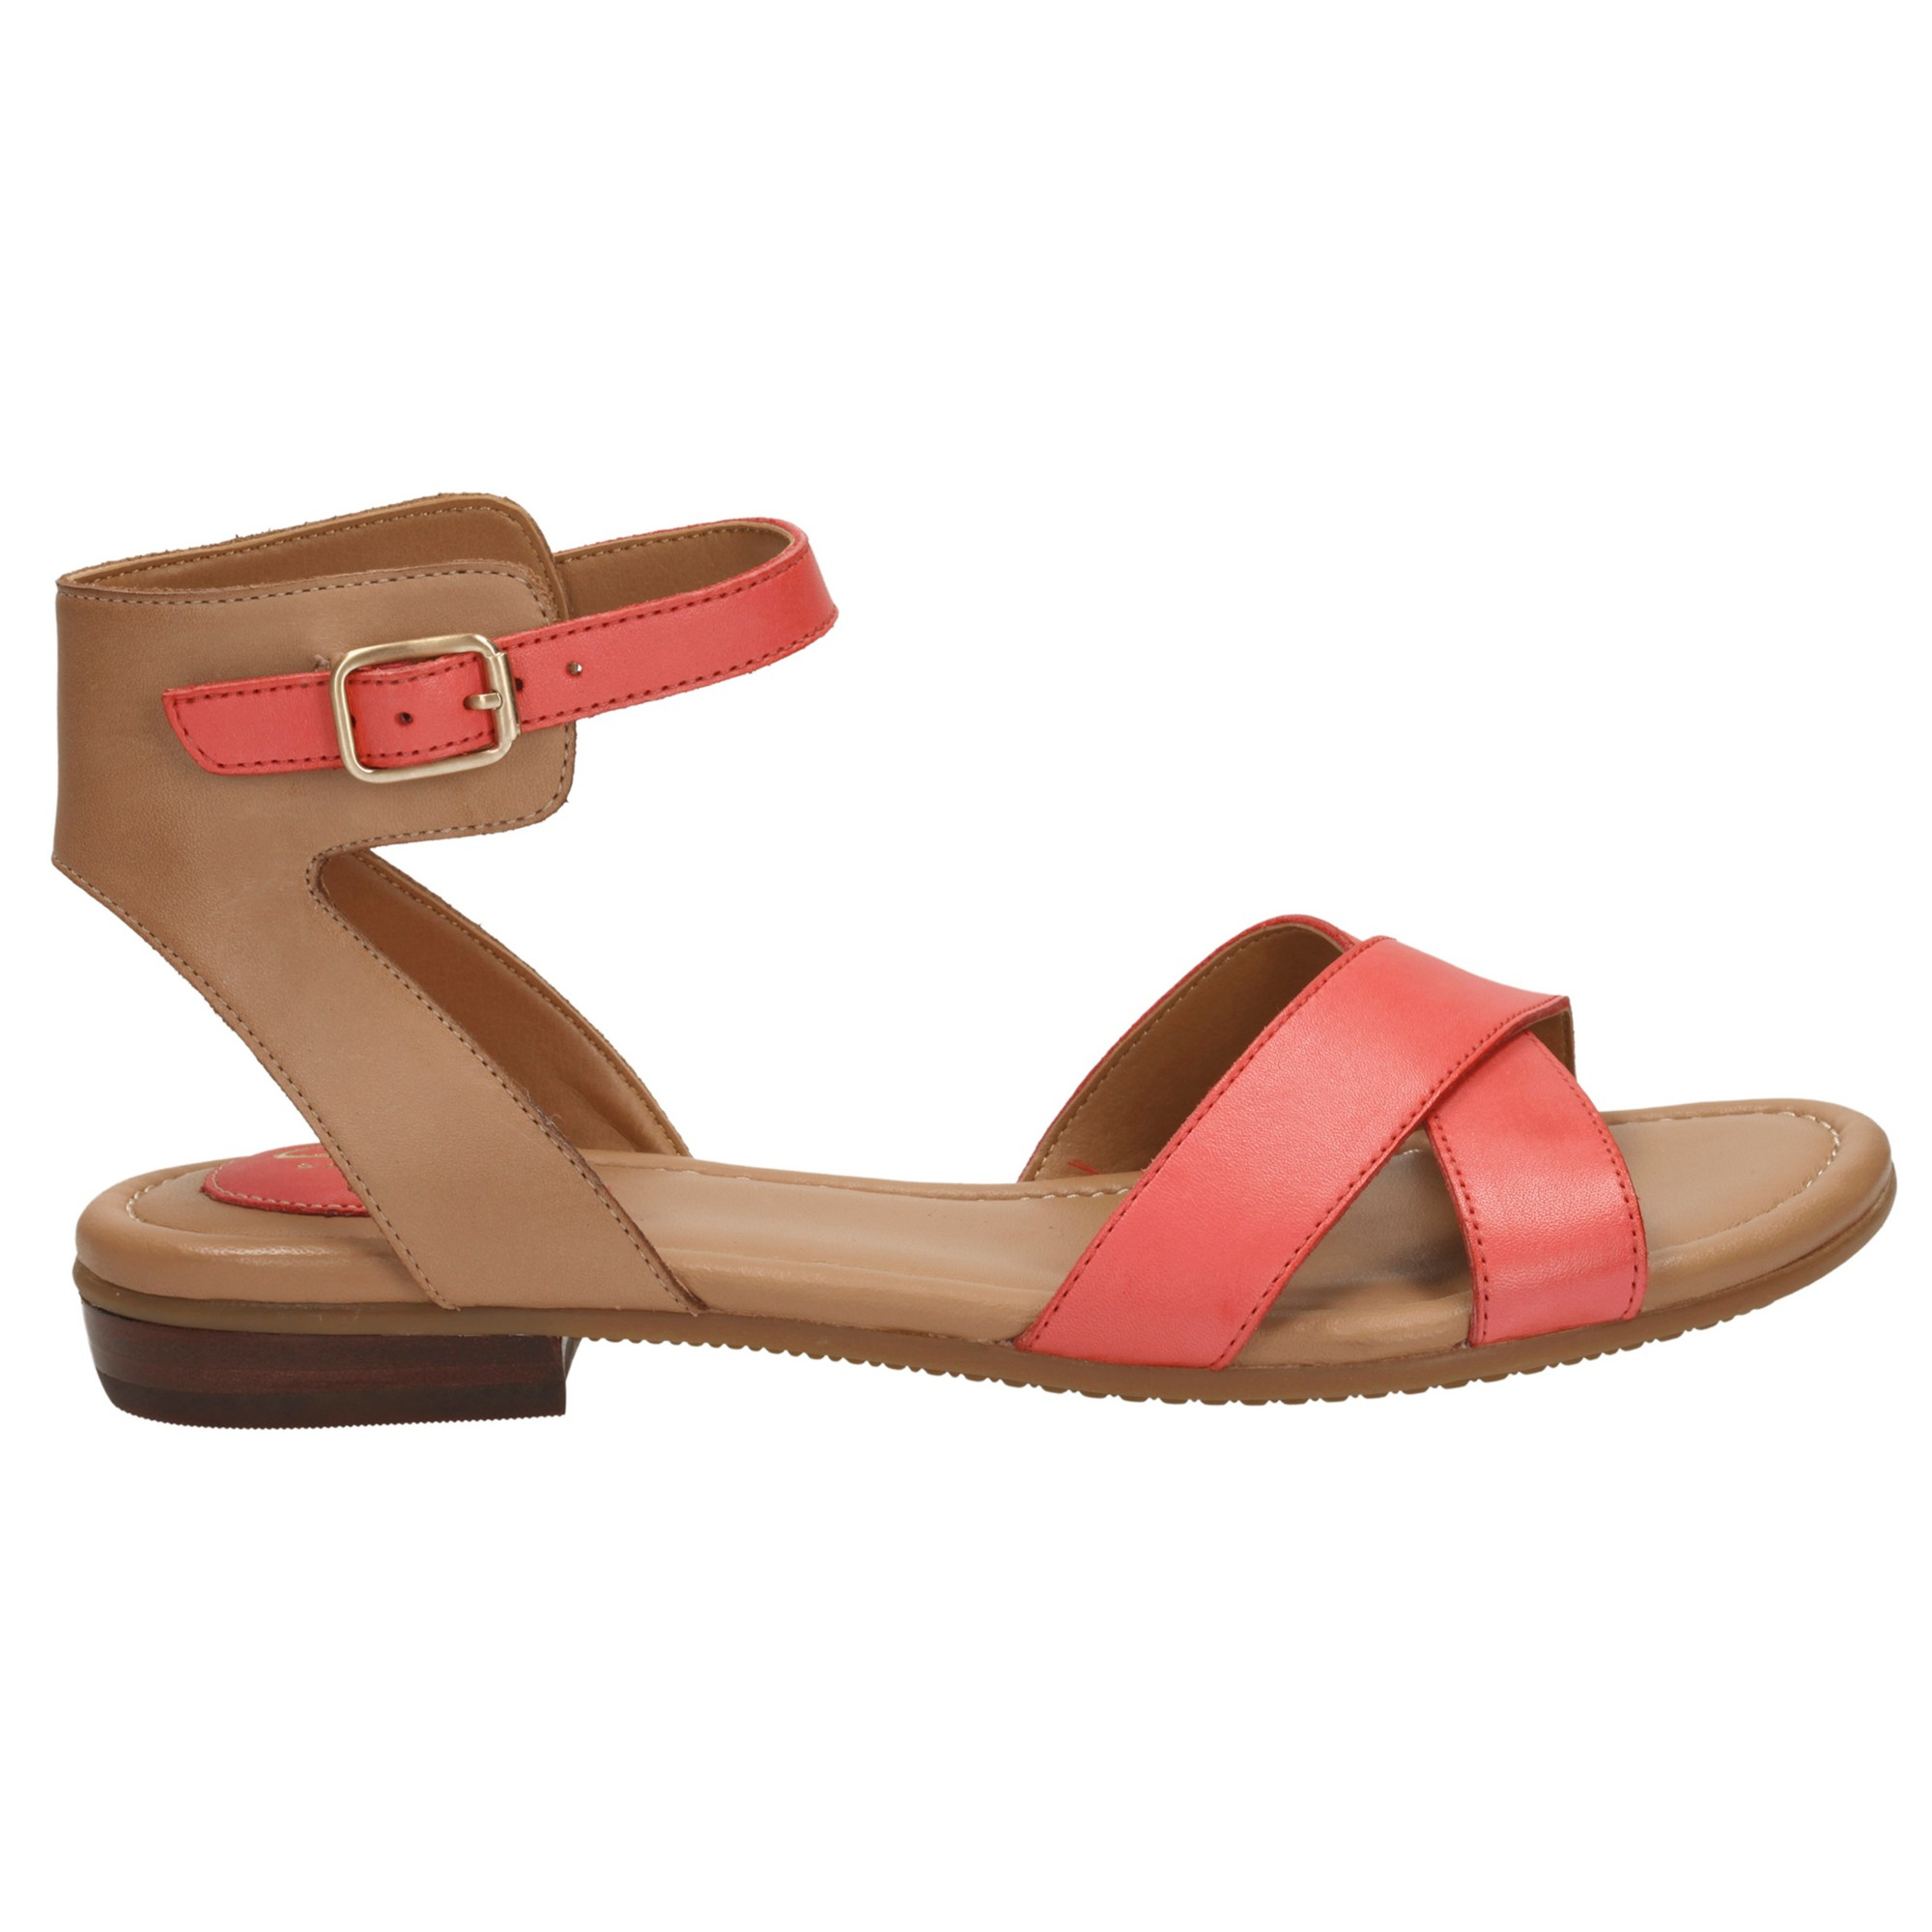 bcf2ec87f364 Clarks Viveca Zeal Leather Ankle Strap Sandals in Pink - Lyst